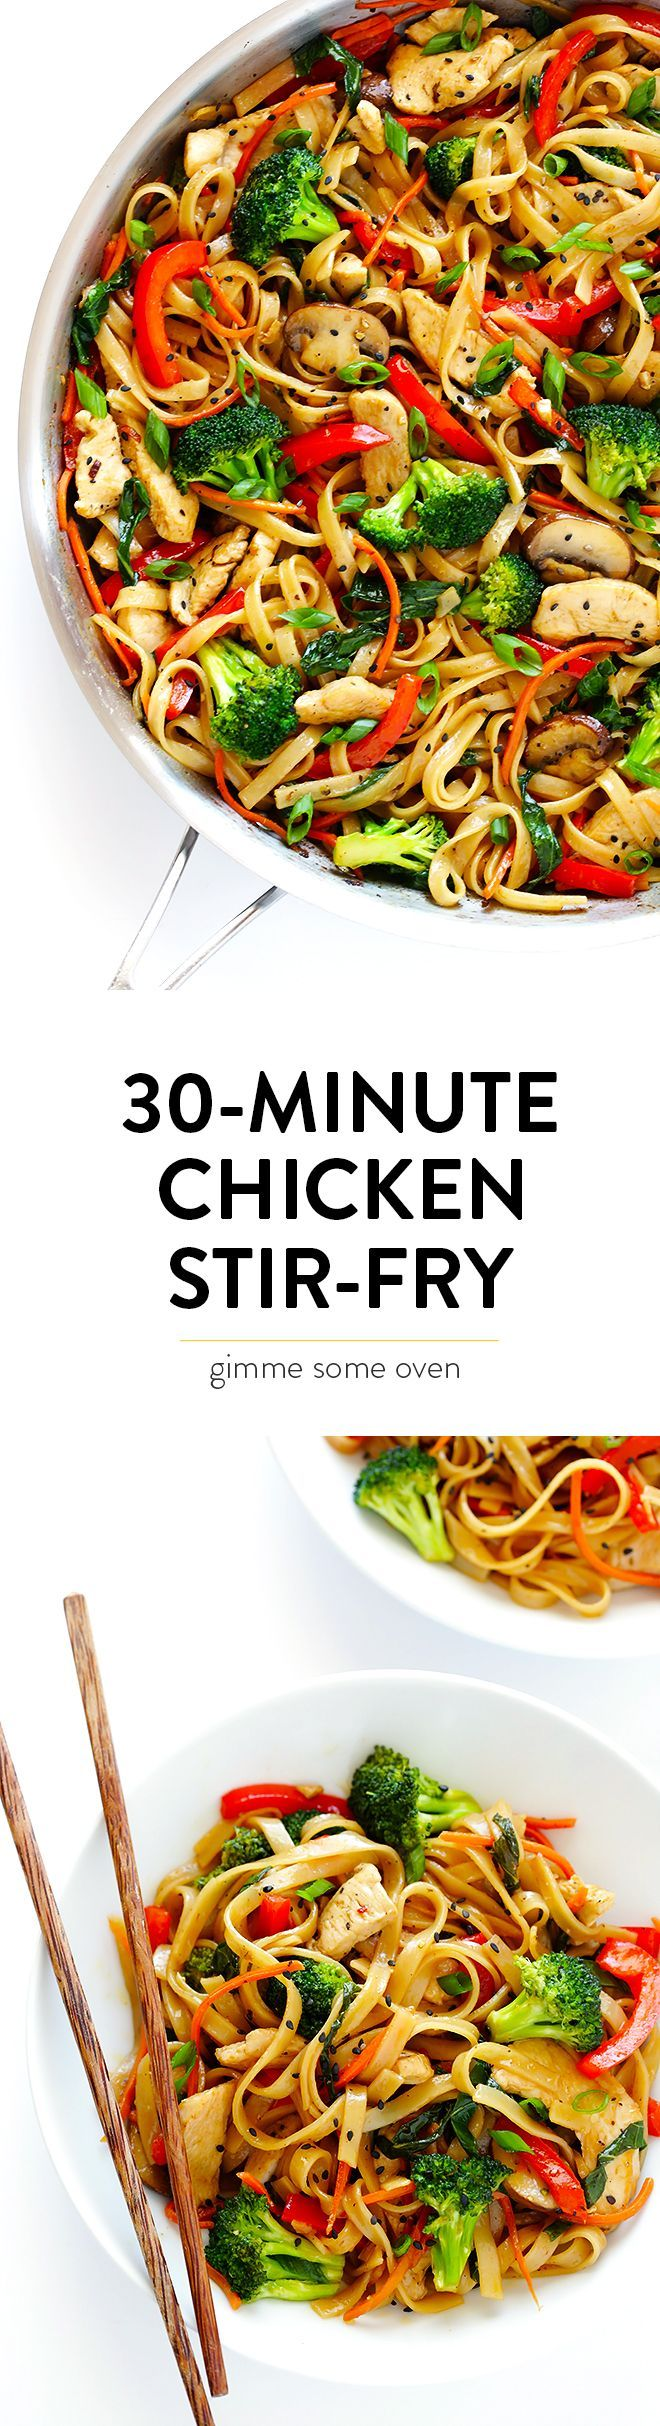 This 30-Minute Sesame Chicken Noodle Stir-Fry recipe is quick and easy to make, easy to customize with whatever fresh veggies or greens you have on hand, and it's tossed with the most delicious sesame-soy vinaigrette!